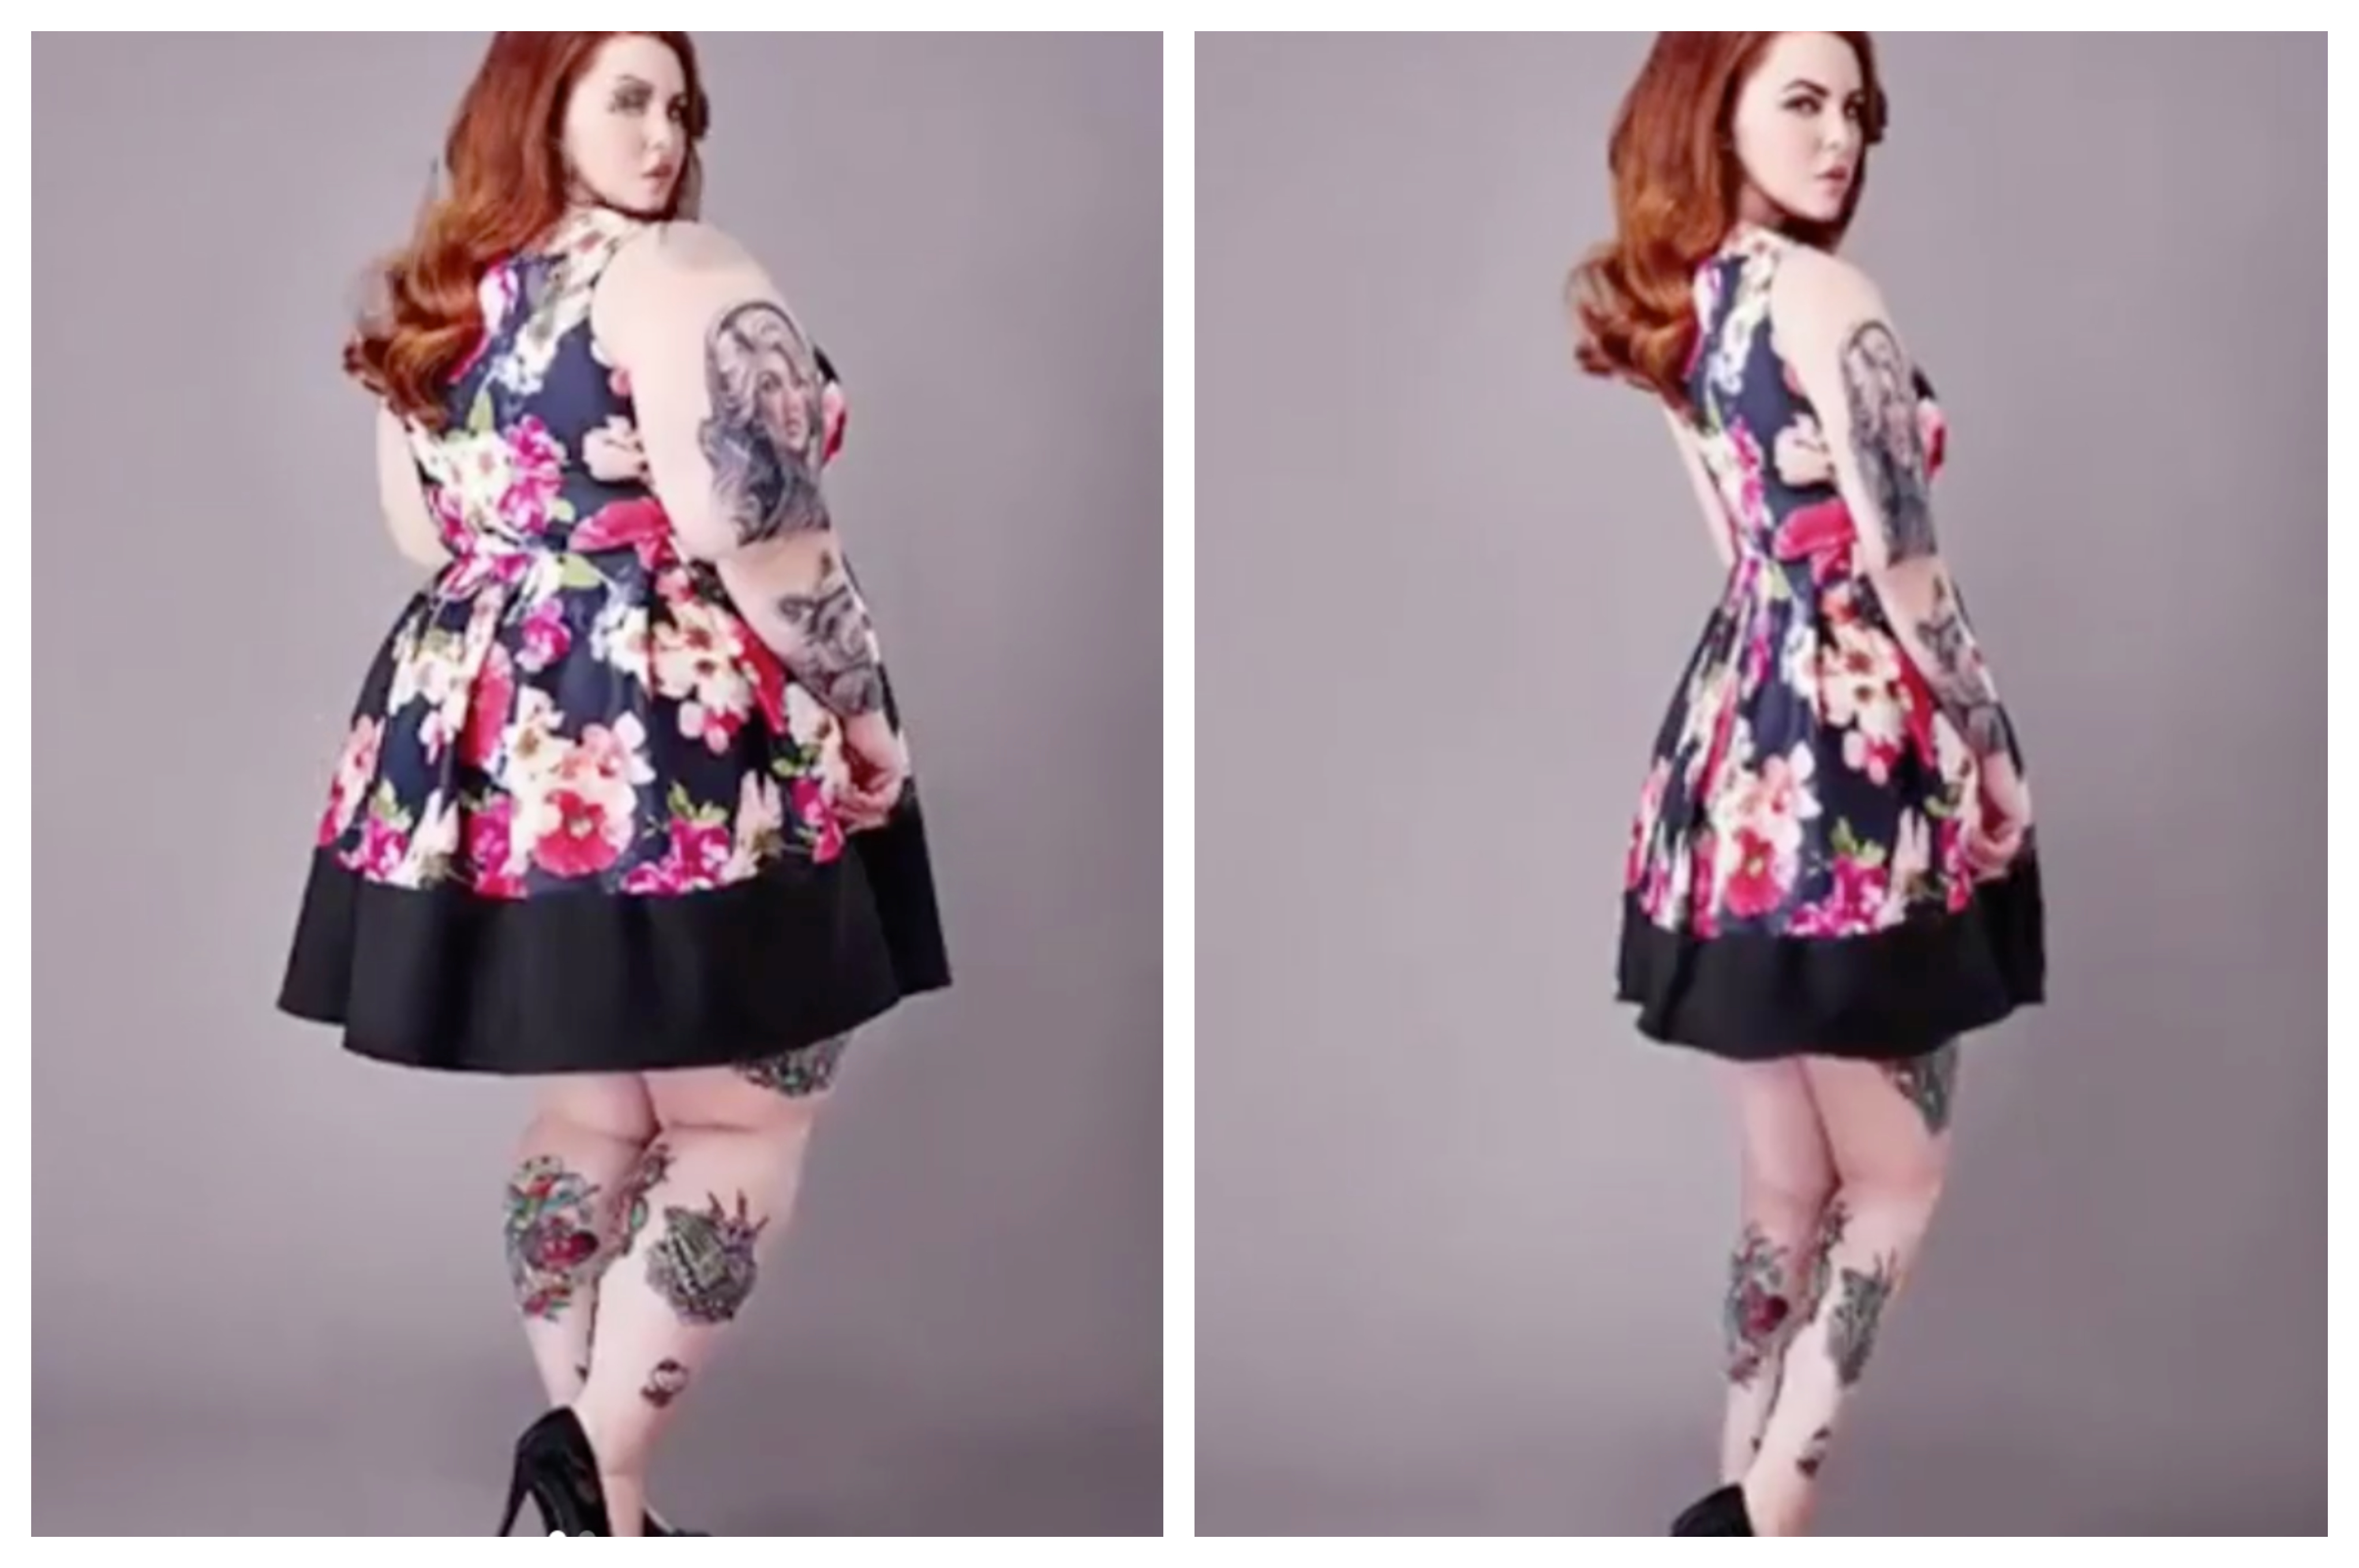 Tess Holliday Claps Back at Slimming App That Stole and ...